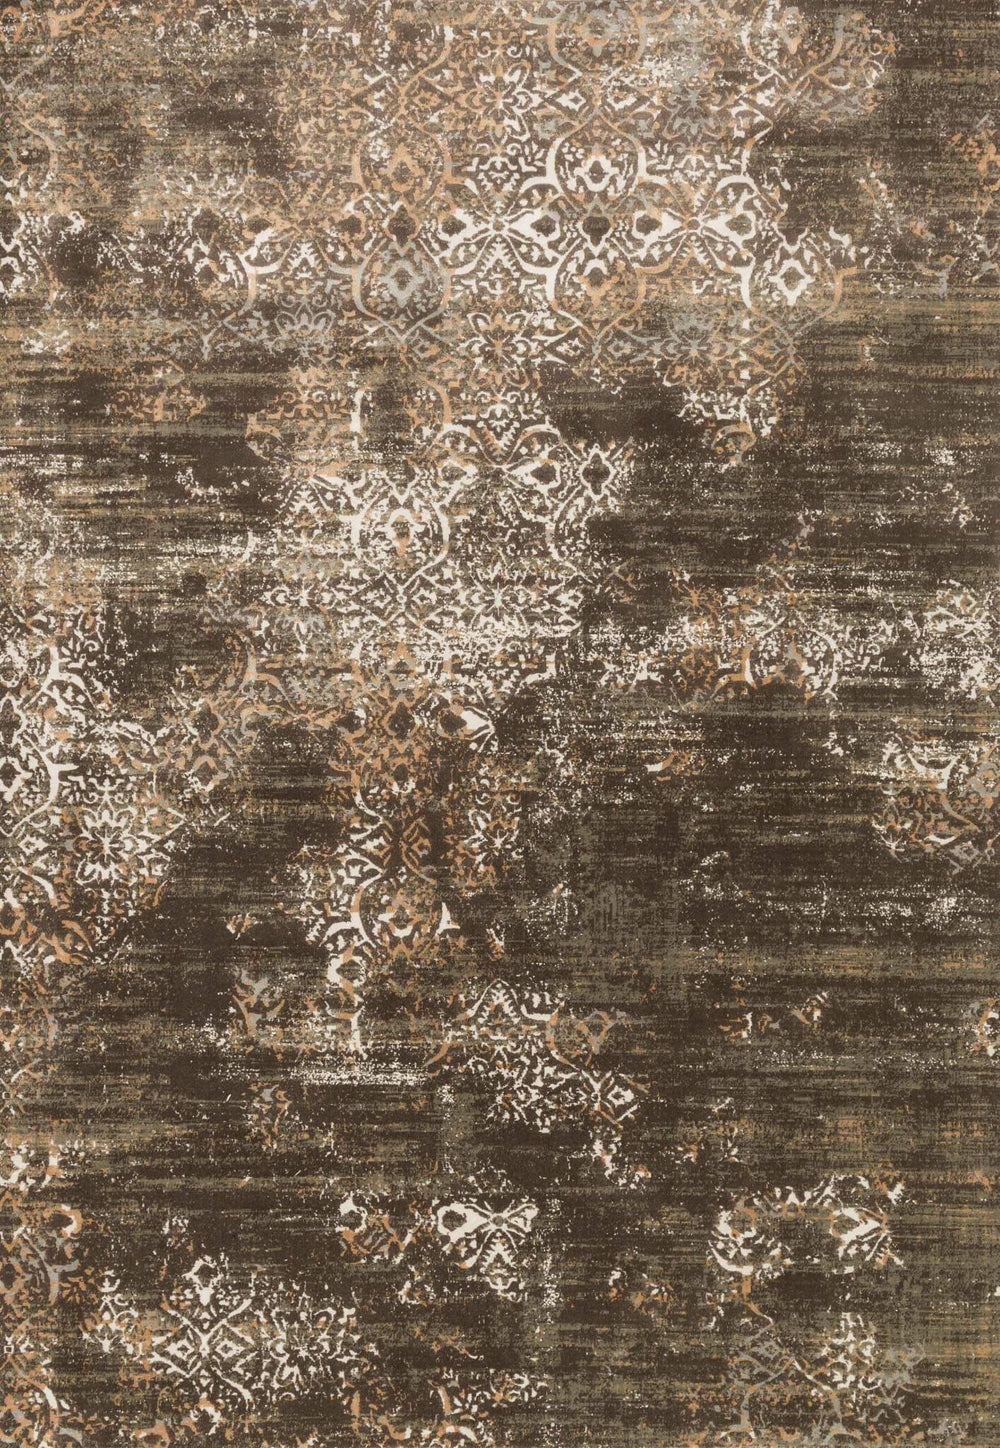 Loloi Rug Kingston KT-02 Taupe/Multi - Accessories - Rugs - Loloi Rugs